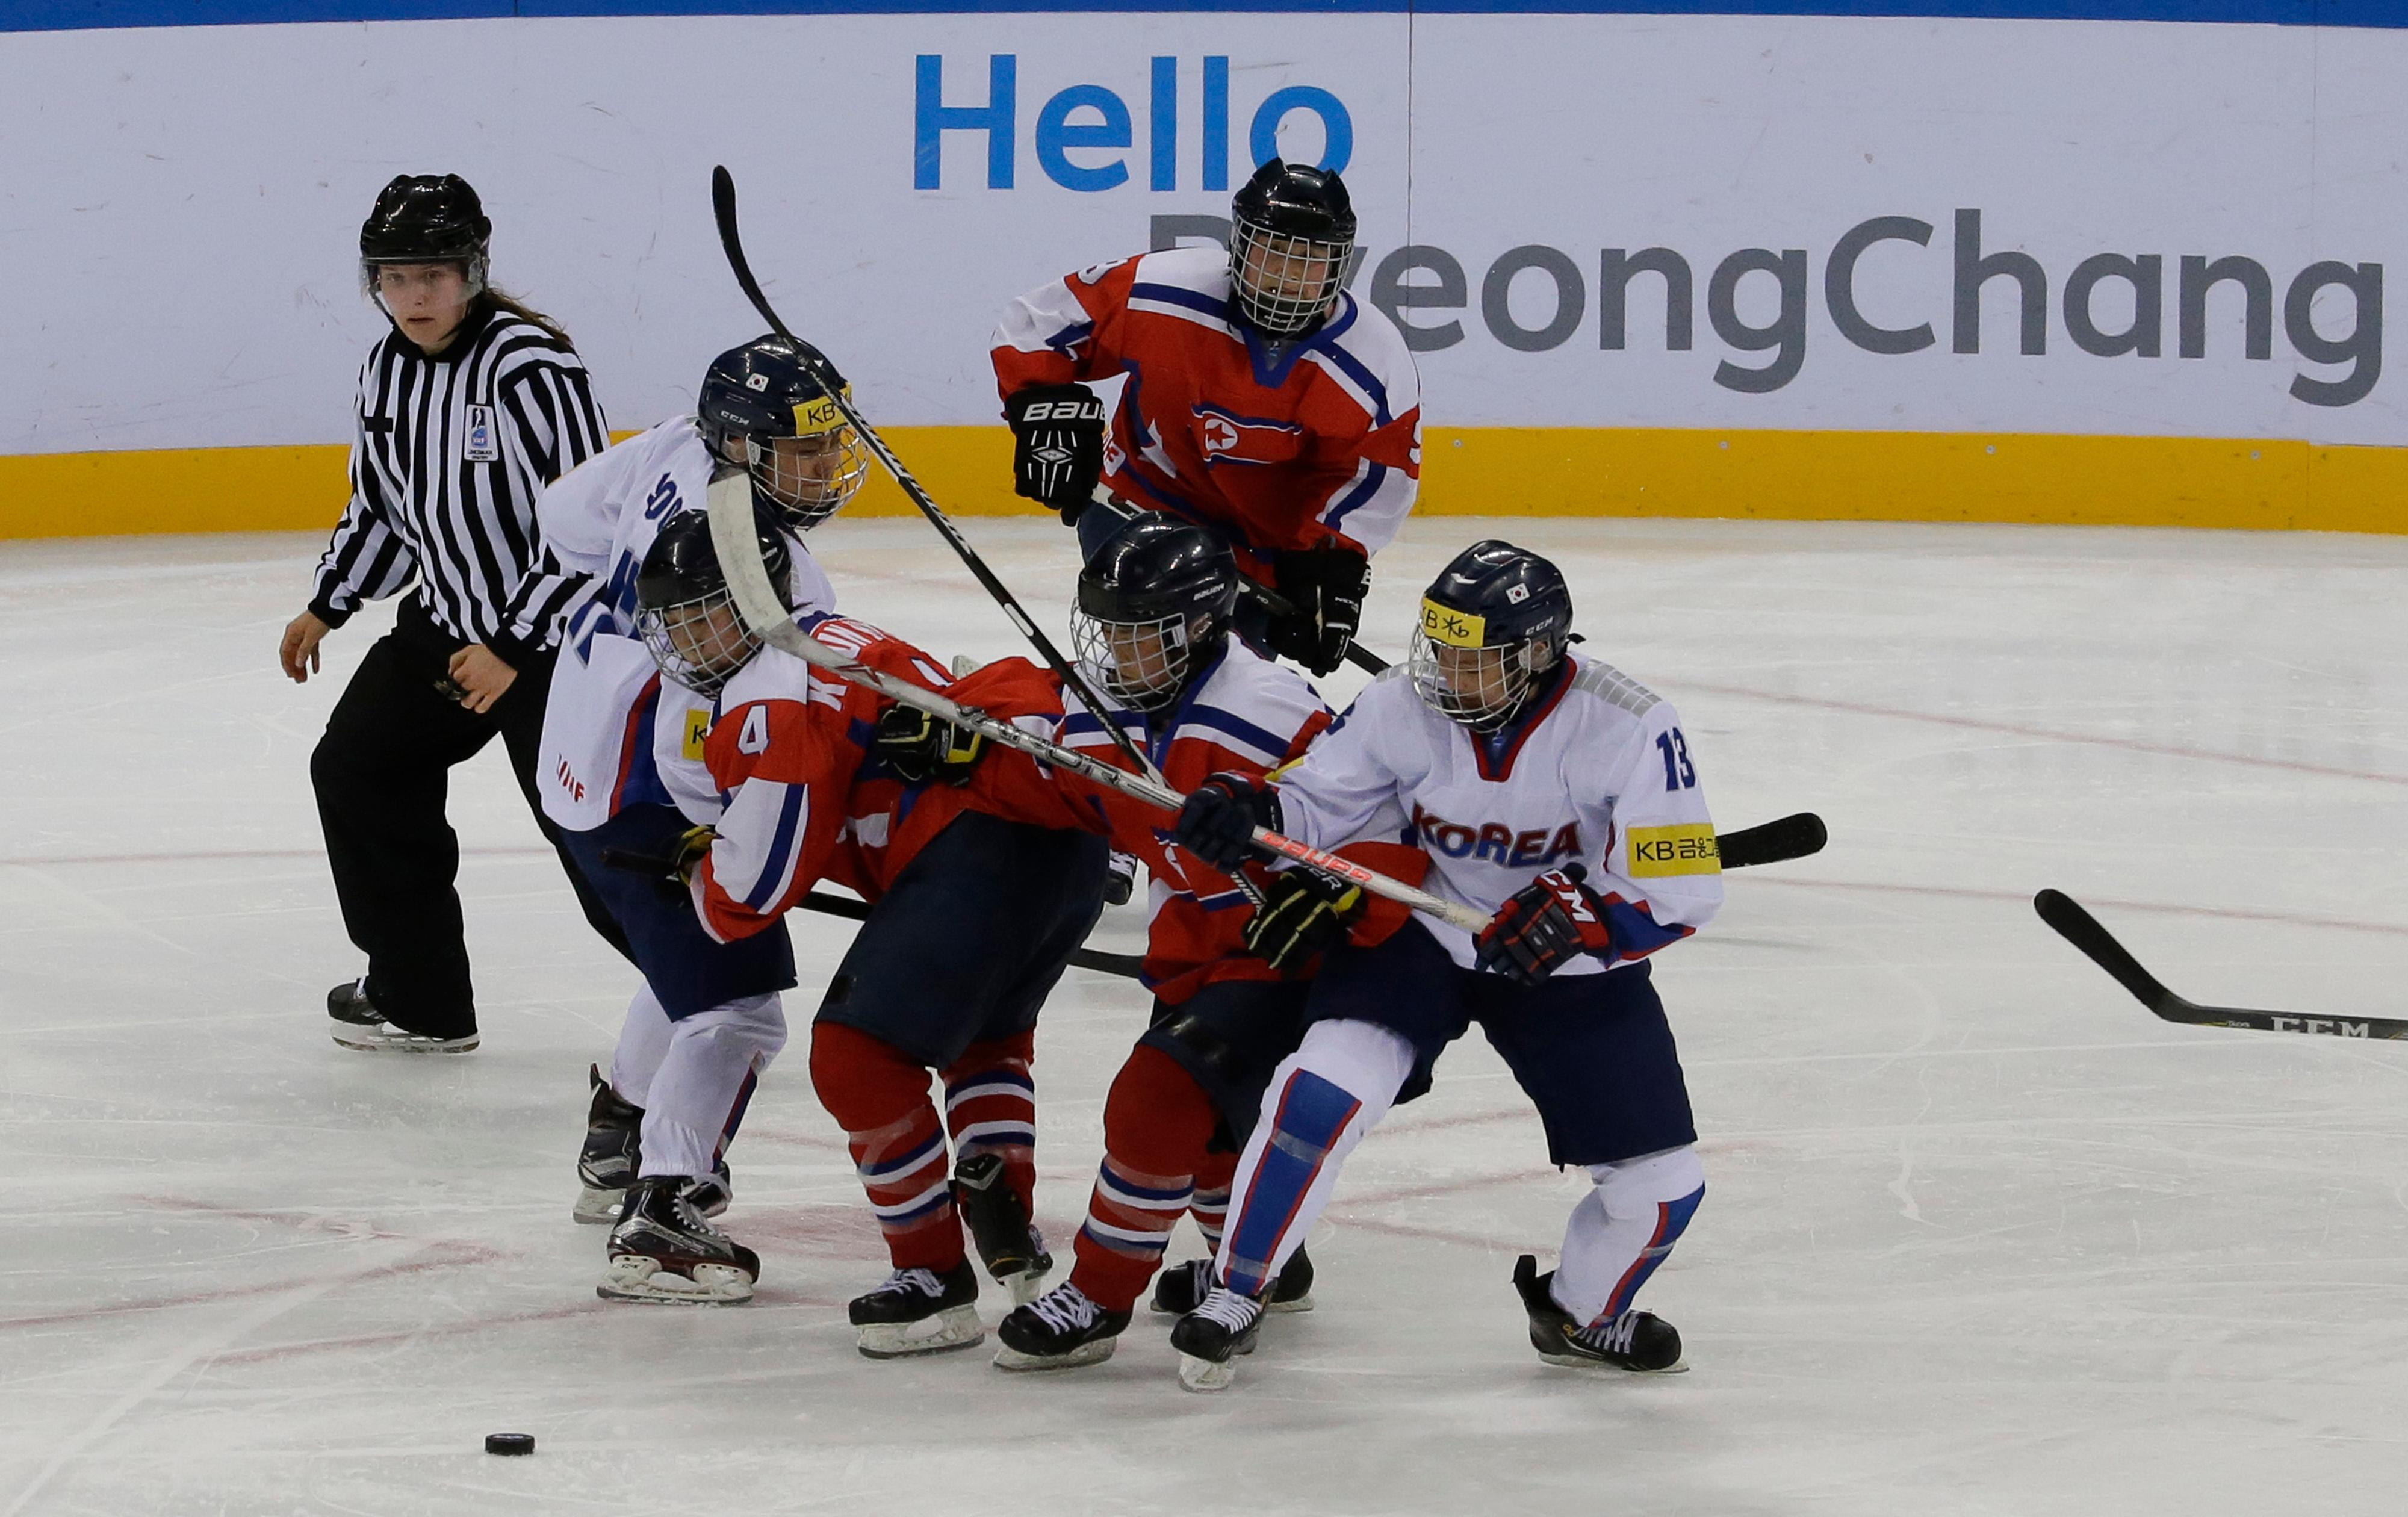 "FILE - In this April 6, 2017 file photo, South, wearing white uniforms, and North Korean players compete during their IIHF Ice Hockey Women's World Championship Division II Group A game in Gangneung, South Korea. During South and North Korea's talks at the border in about a week Wednesday, Jan. 17, 2018, senior officials from the two Koreas reached a package of deals including fielding a joint women's hockey team and conducting a joint march under a ""unification flag"" depicting their peninsula during the opening ceremony, according to Seoul's Unification Ministry. (AP Photo/Ahn Young-joon)"